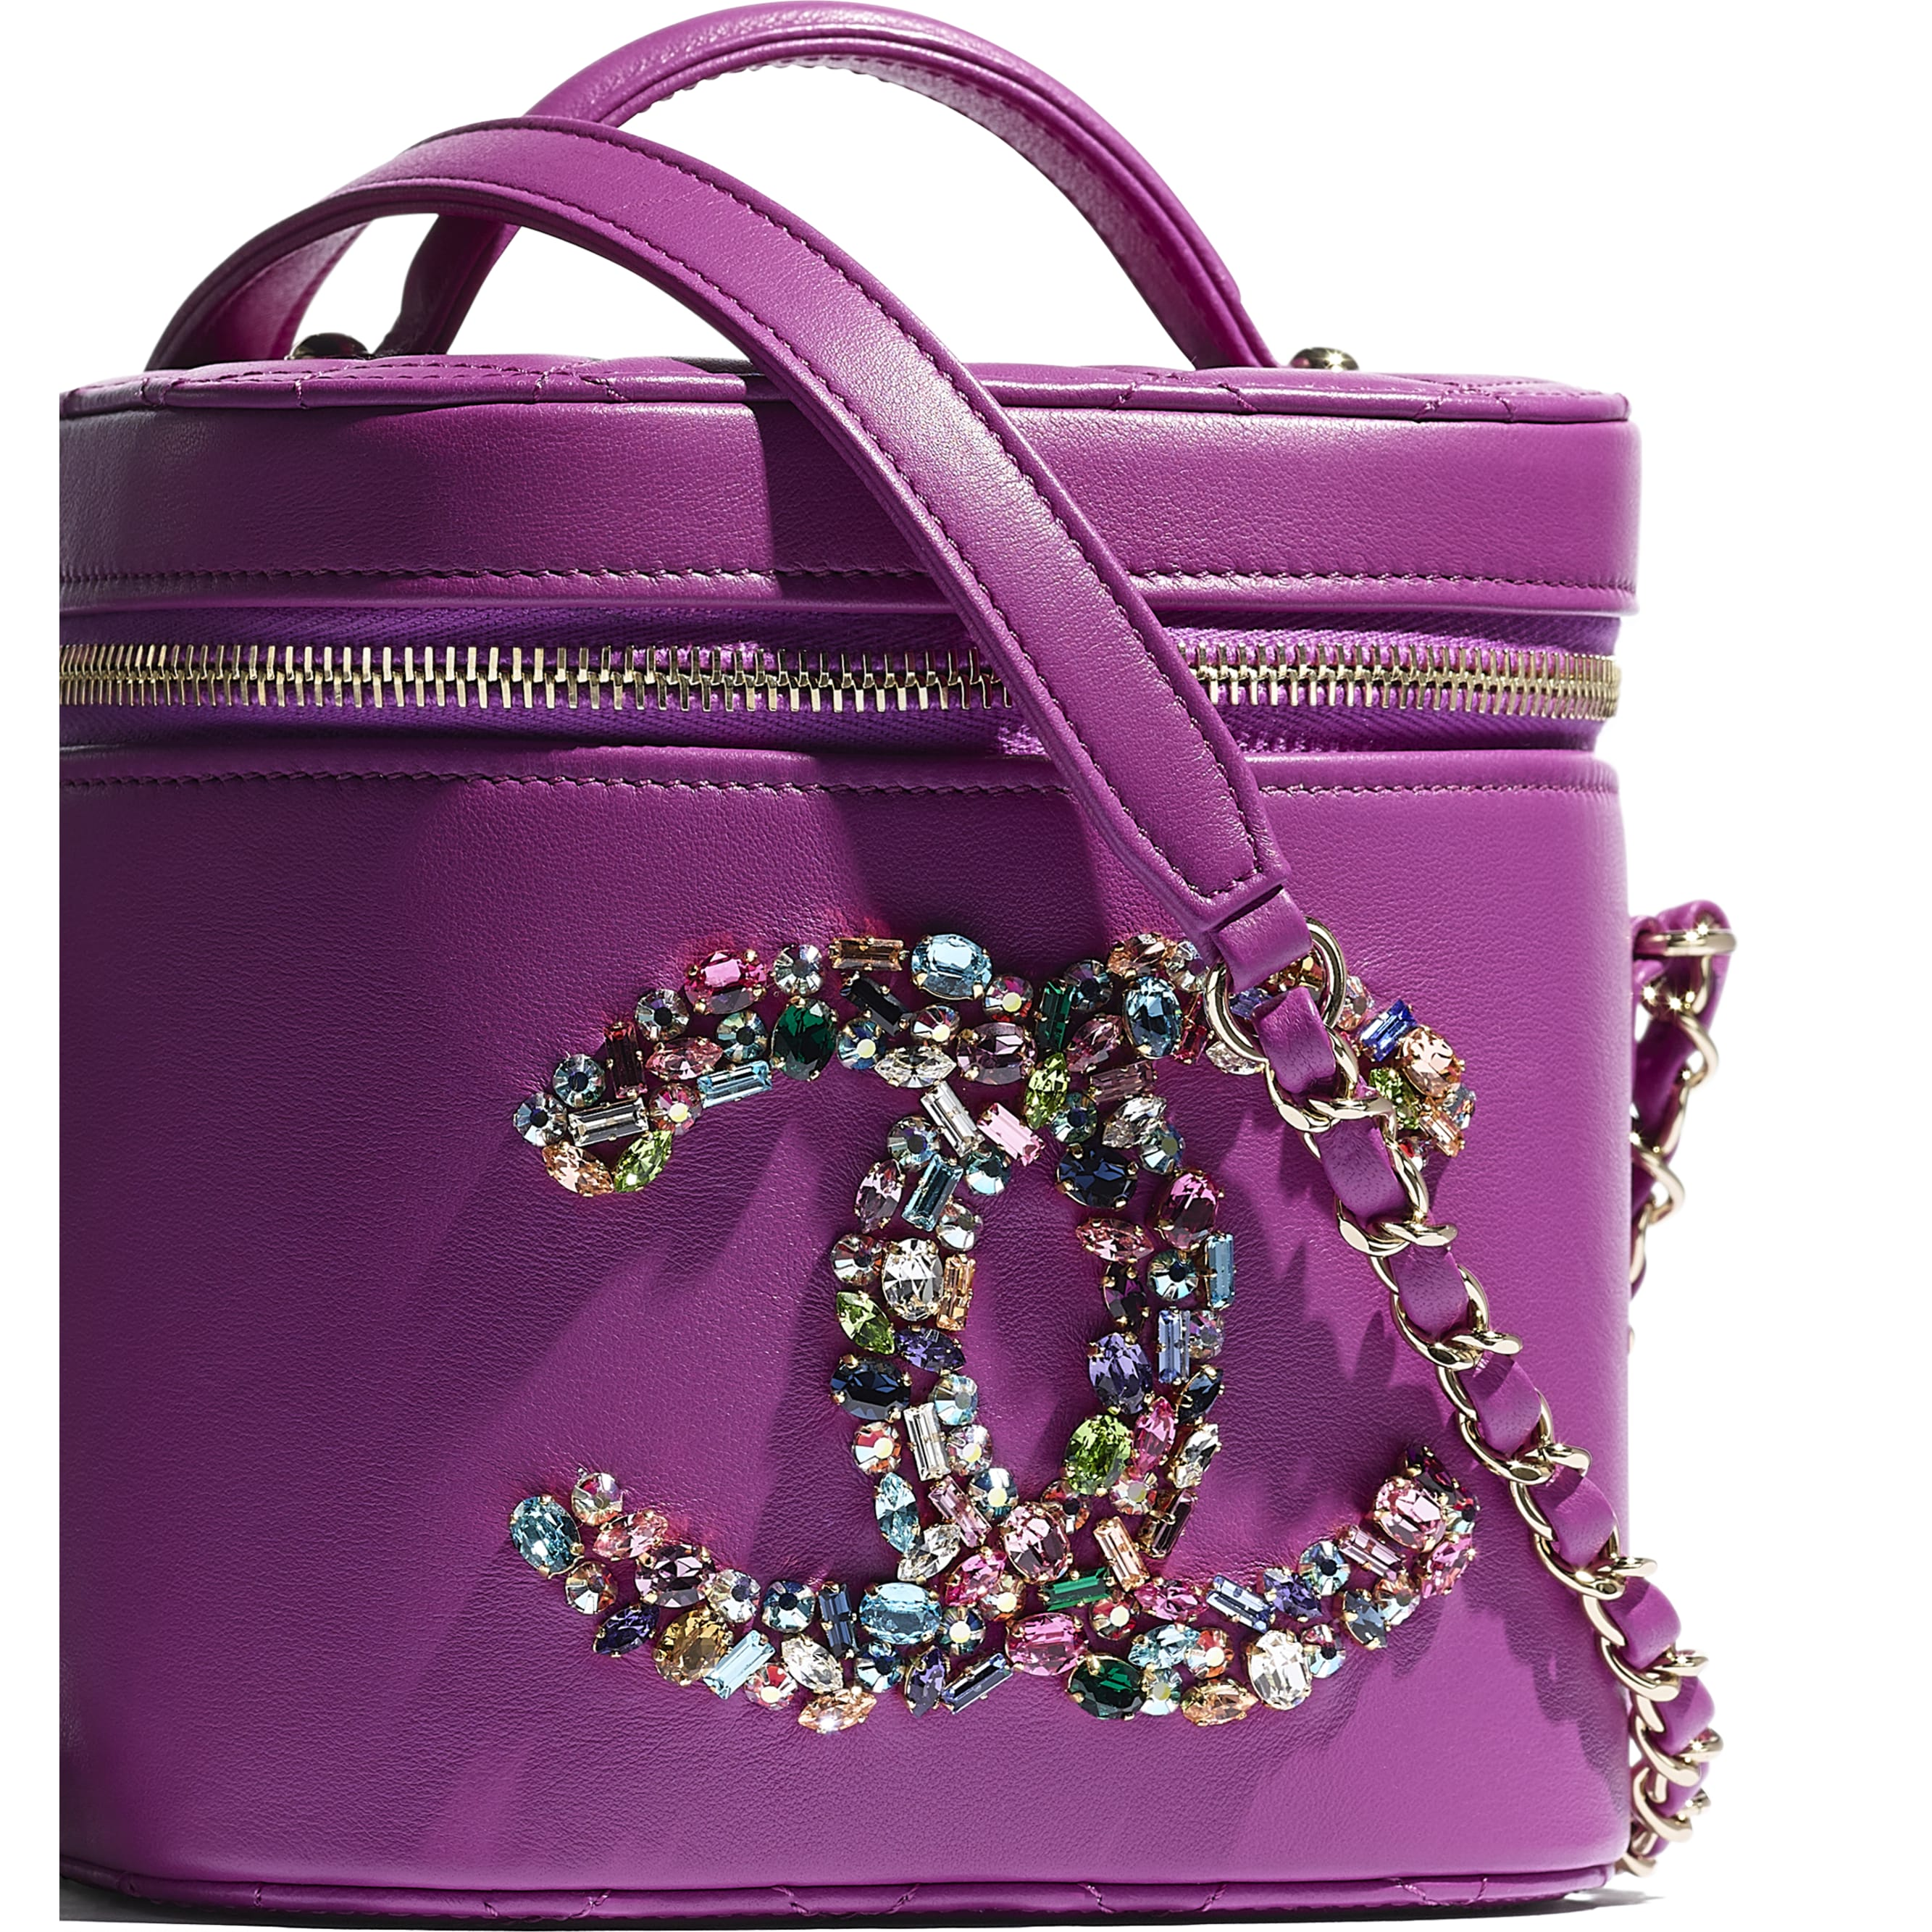 Vanity Case - Purple - Lambskin, Crystal, Calfskin & Gold-Tone Metal - CHANEL - Extra view - see standard sized version